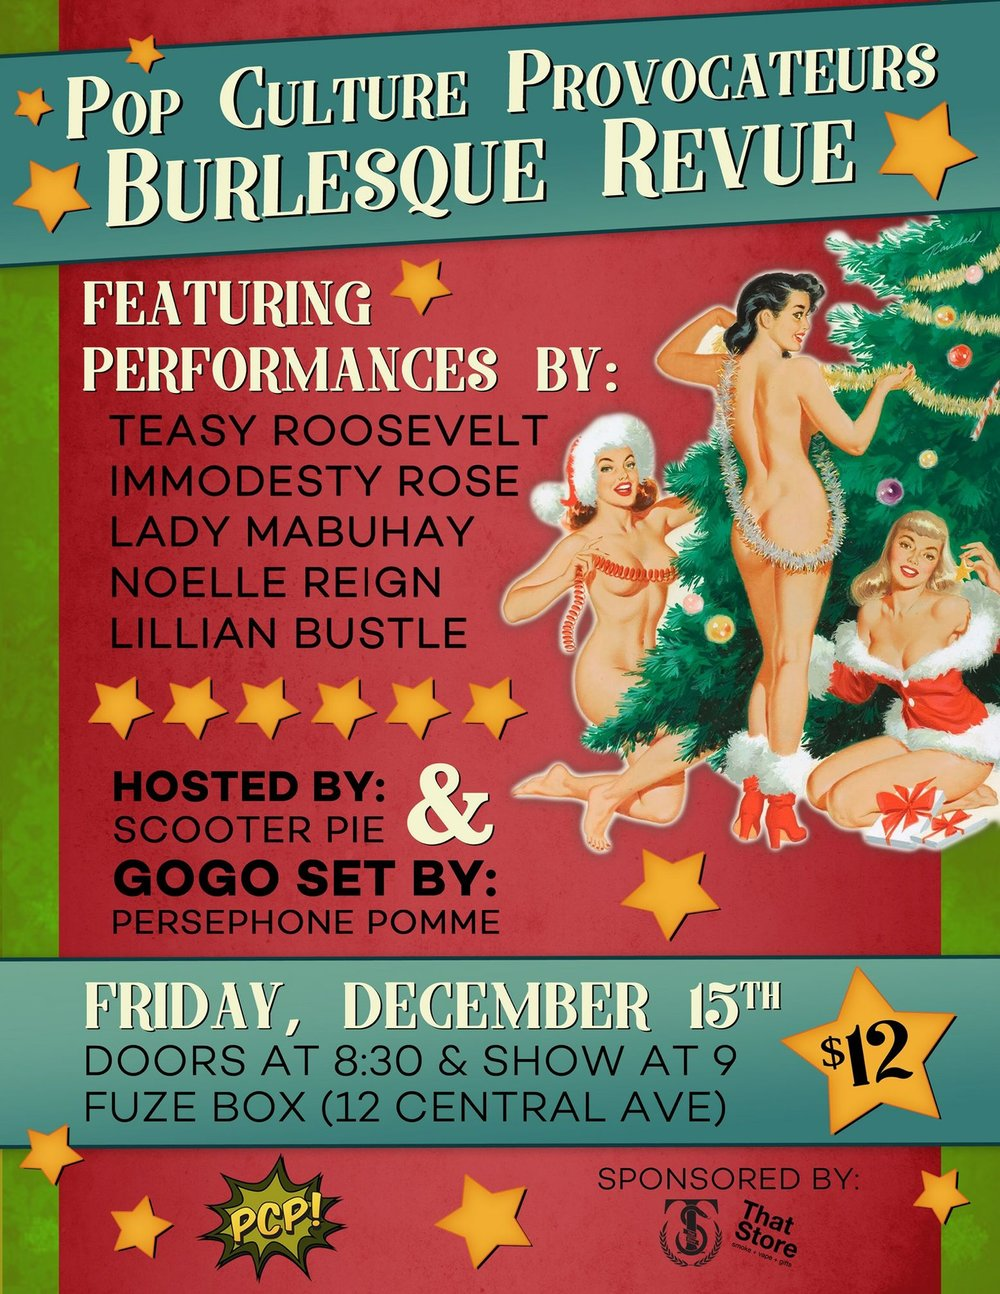 - The lovely ladies of Pop Culture Provocateurs present the December edition of their monthly Burlesque Revue! Win a $25 That Store gift card in the raffle! FEATURING...Your host, SCOOTER PIEGogo set by our stage kitten, PERSEPHONE POMME PERFORMANCES BY...IMMODESTY ROSELADY MABUHAYNOELLE REIGNTEASY ROOSEVELT& Lillian Bustle Burlesque! FRIDAY DECEMBER 15THDOORS AT 830 // SHOW AT 9FUZE BOX12 CENTRAL AVE$12 BE SURE TO STICK AROUND AND DANCE AT BODY SHINE